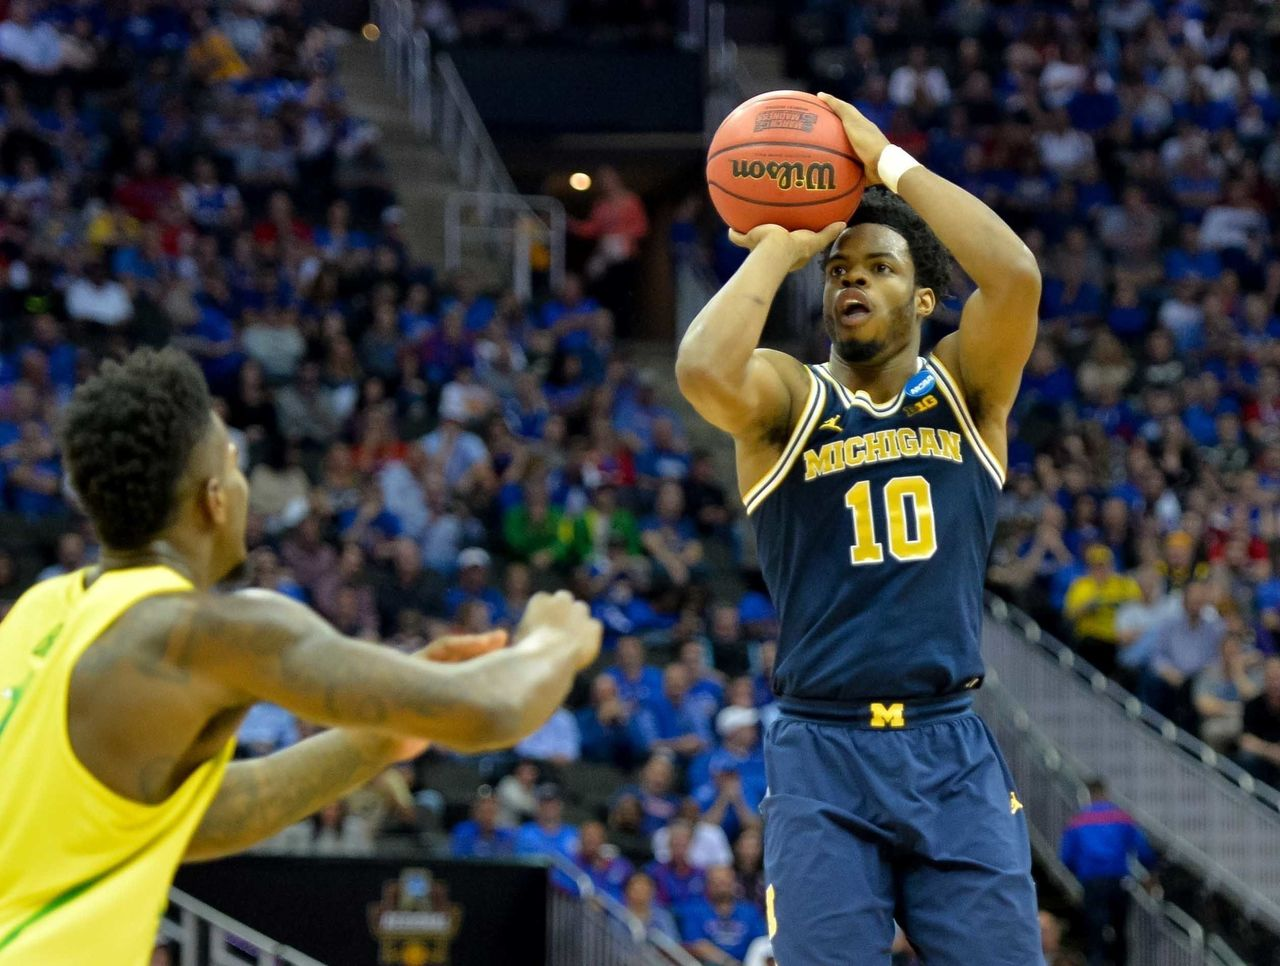 Cropped 2017 03 24t005628z 681015684 nocid rtrmadp 3 ncaa basketball ncaa tournament midwest regional oregon vs michigan